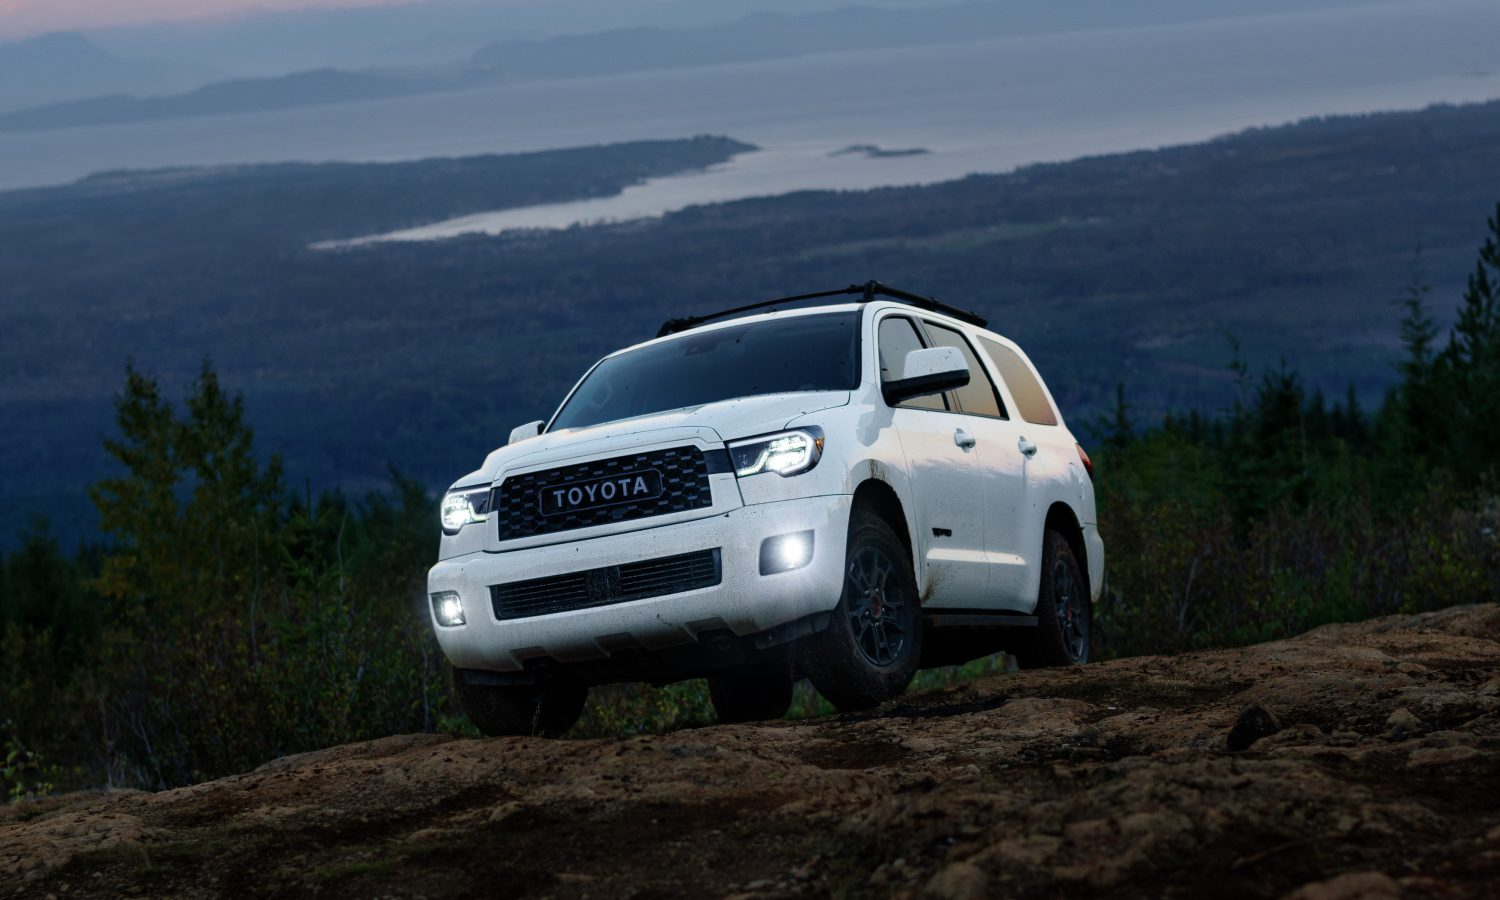 2020 Sequoia Family Trips get More Adventurous with New TRD Pro